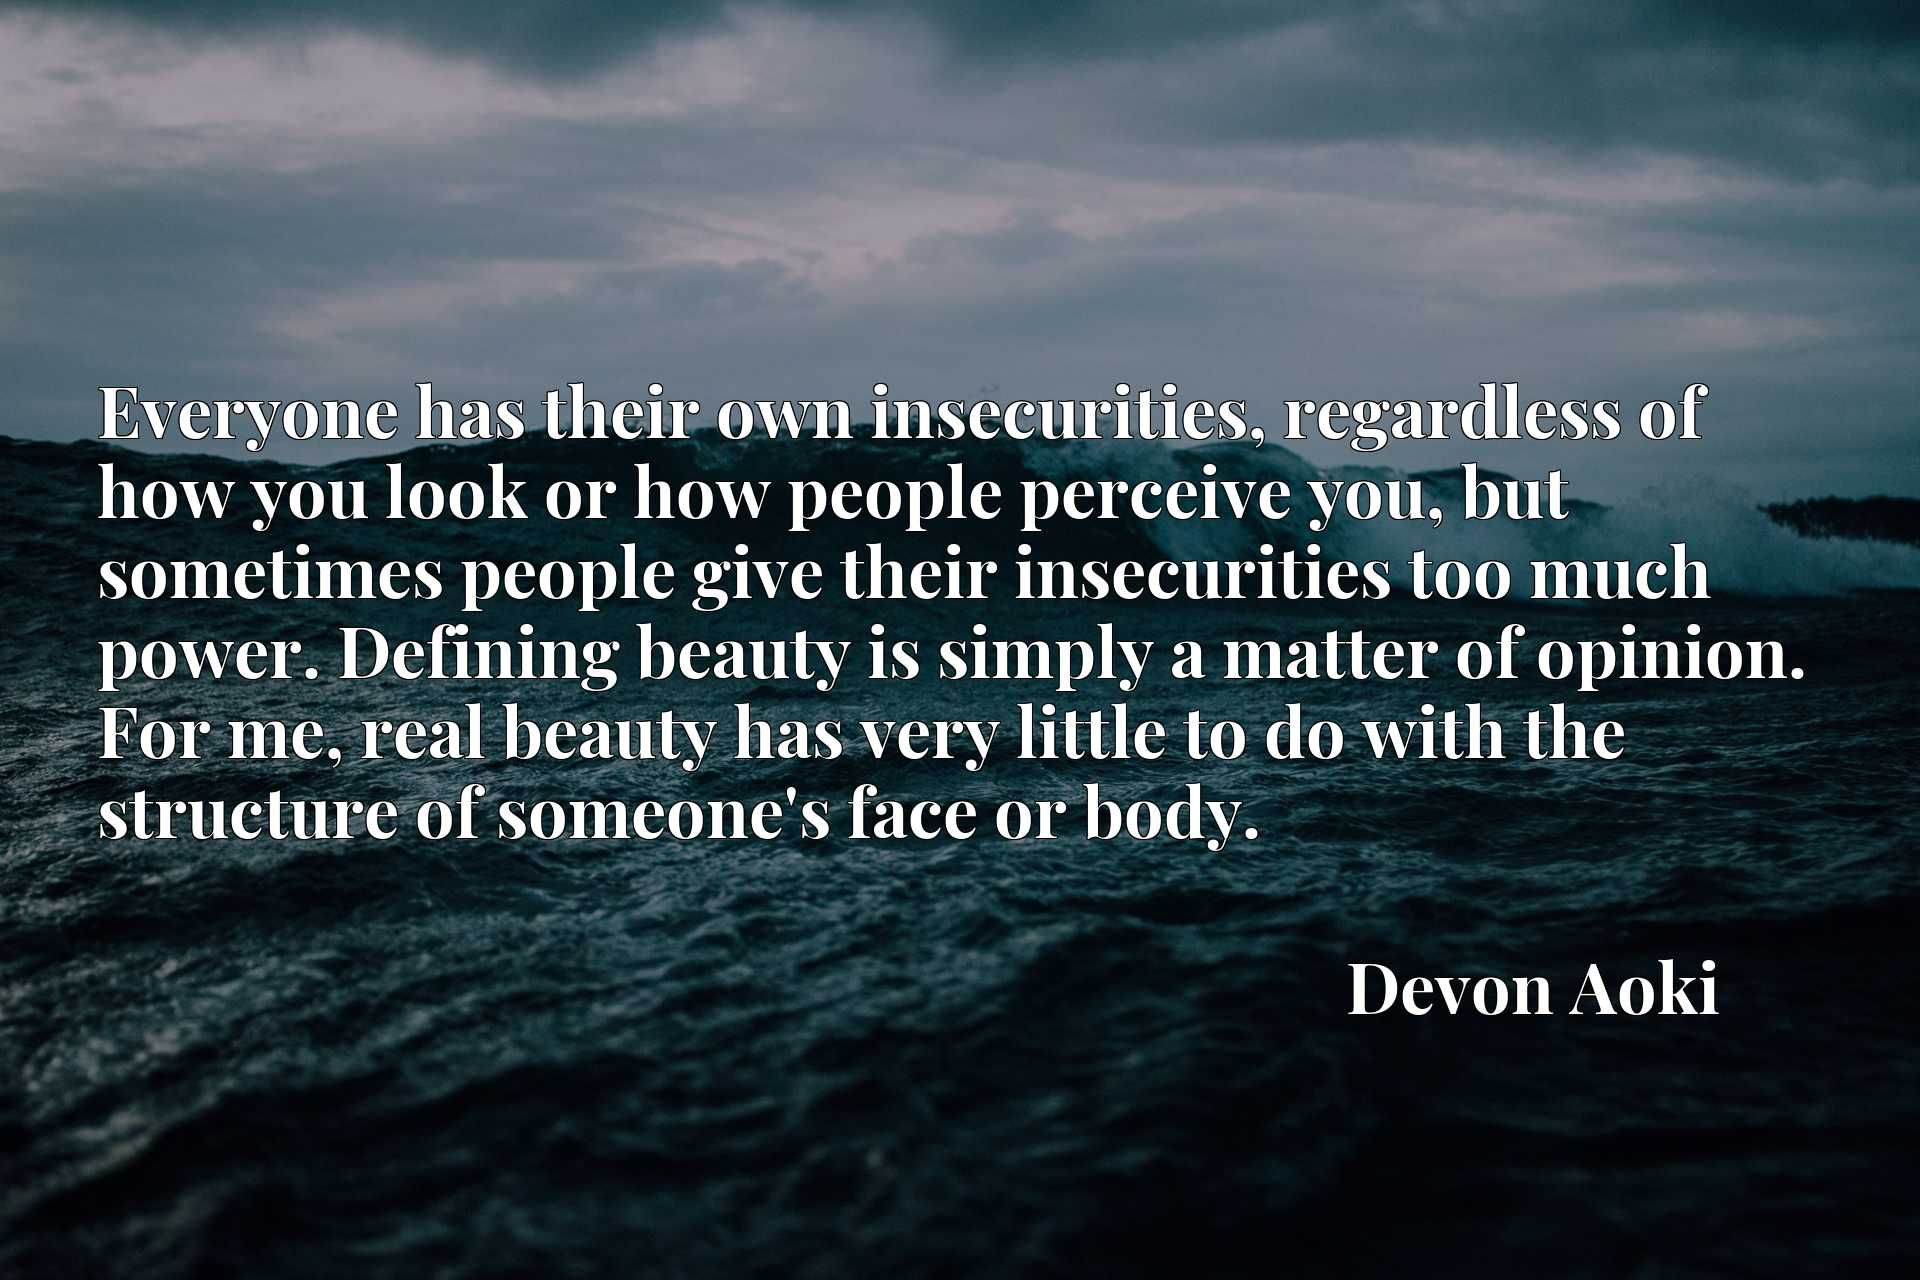 Everyone has their own insecurities, regardless of how you look or how people perceive you, but sometimes people give their insecurities too much power. Defining beauty is simply a matter of opinion. For me, real beauty has very little to do with the structure of someone's face or body.